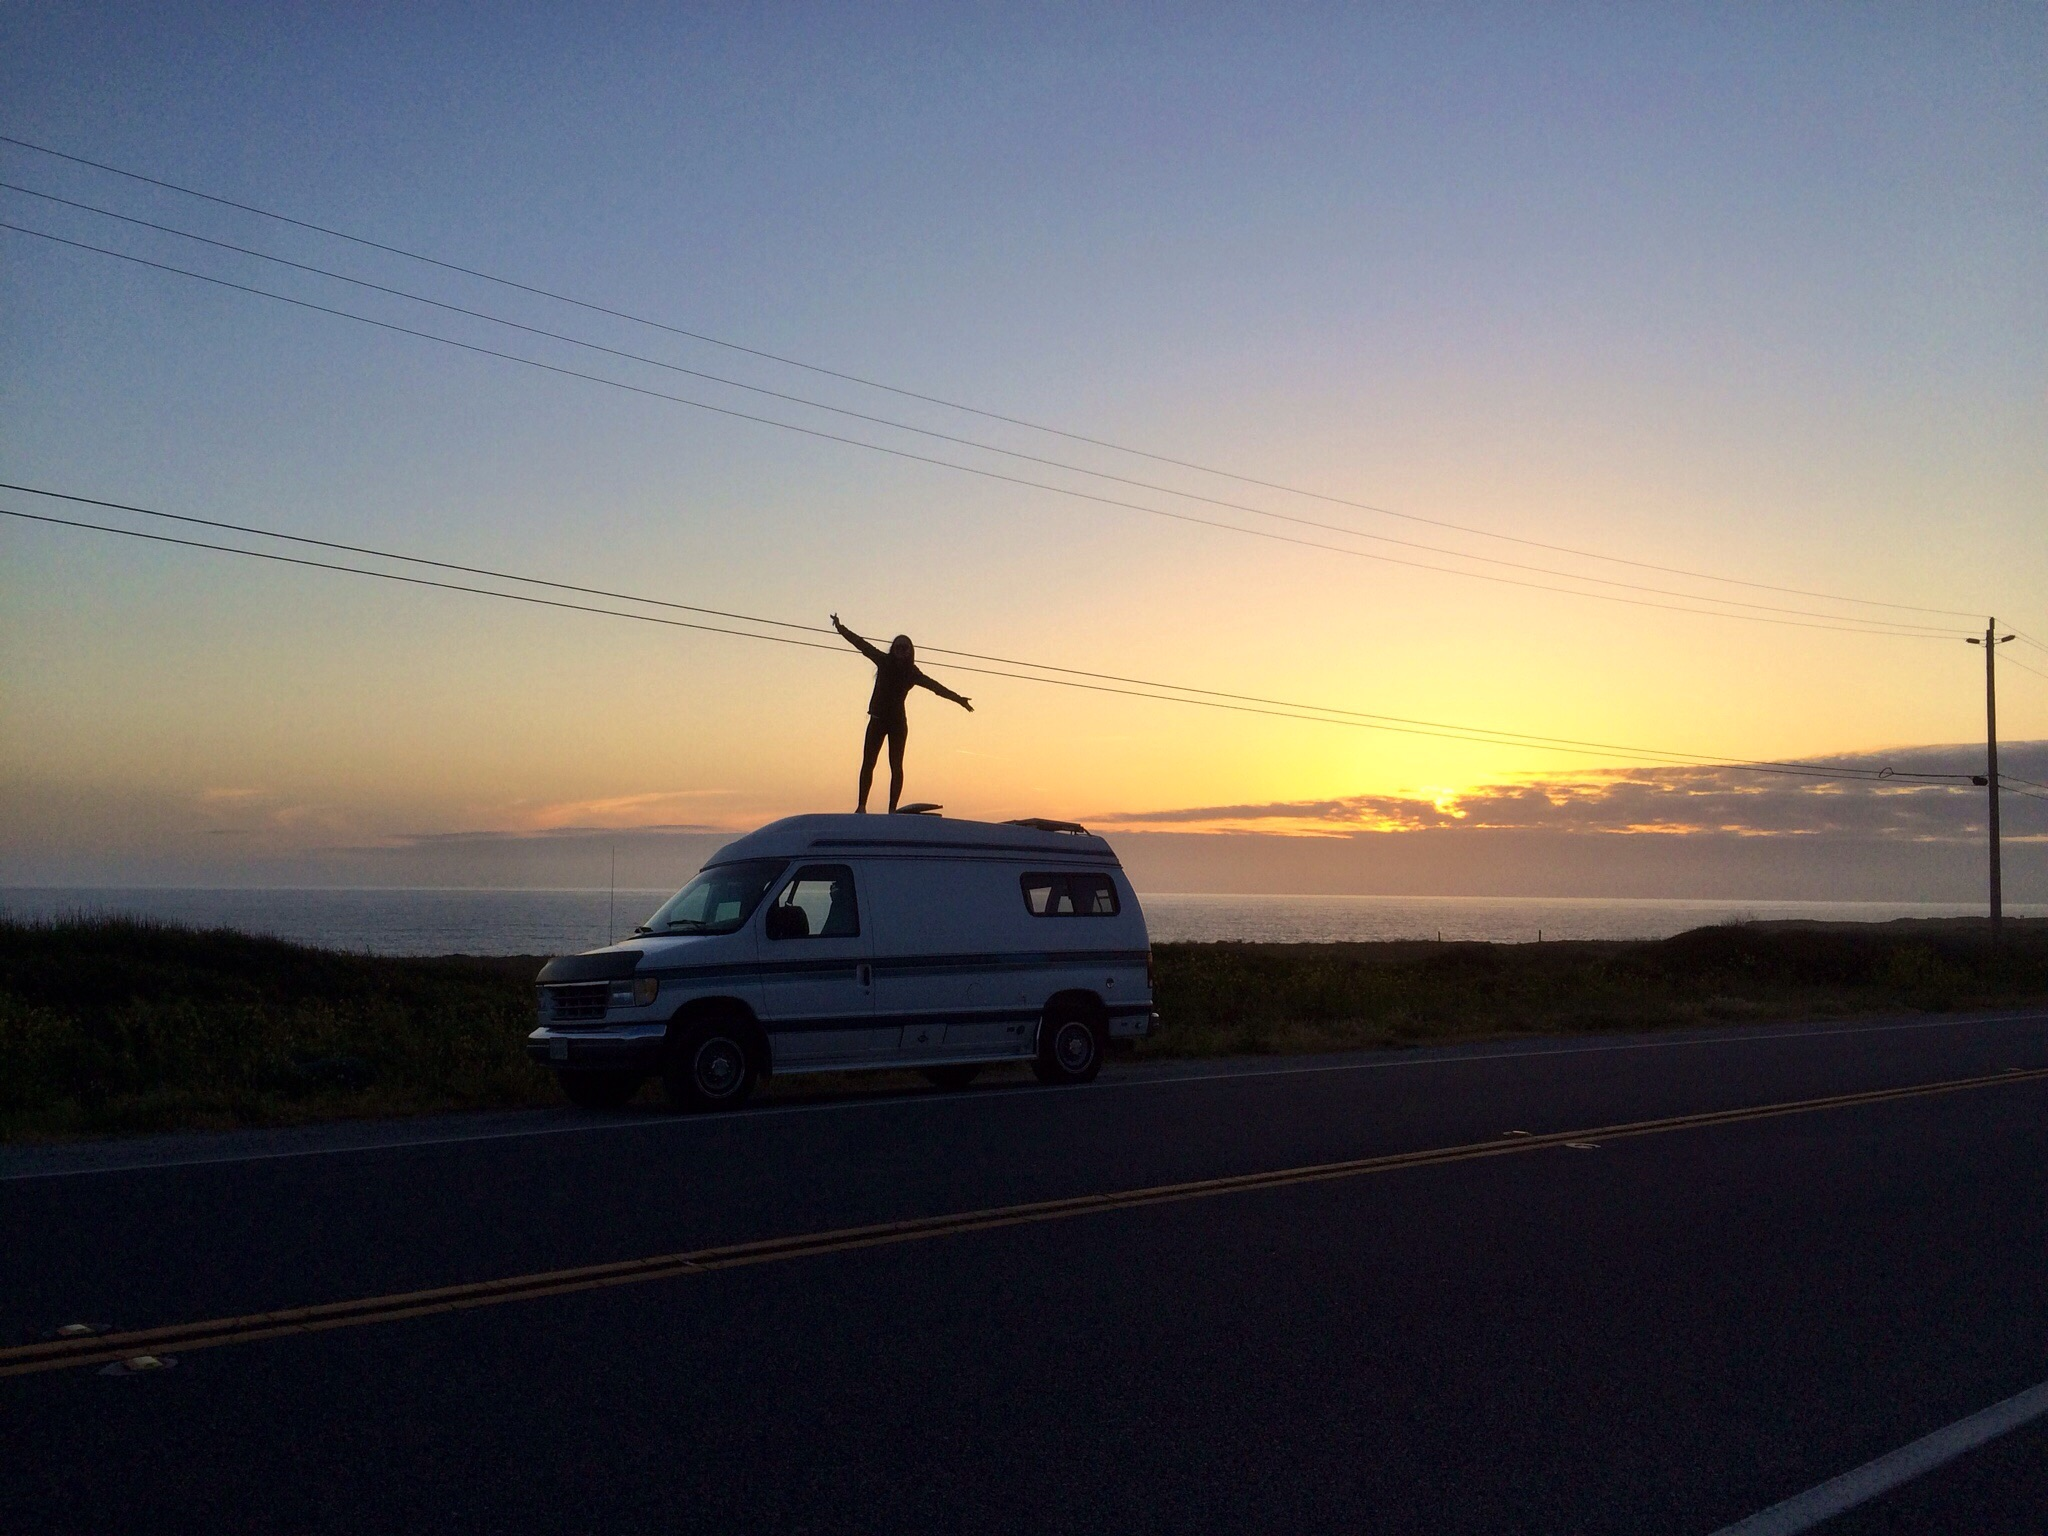 First trip up Hwy 1 in our new (to us!) van